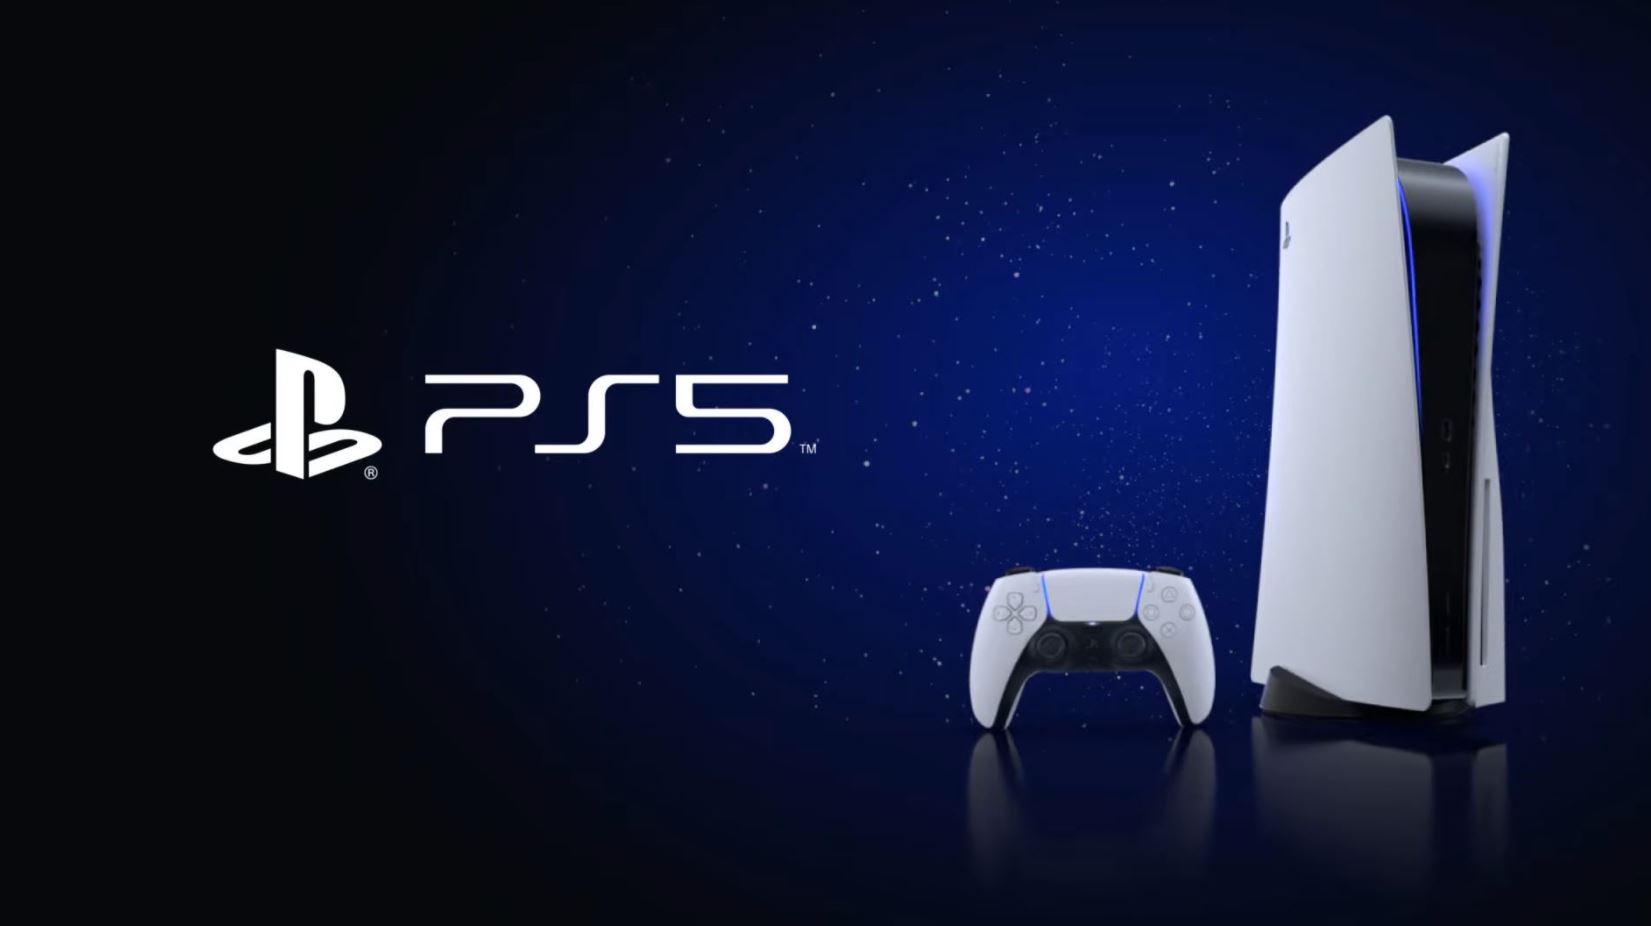 uk-retailer-very-cancels-over-1000-next-gen-console-orders-including-ps5s-to-thwart-scalper-groups-attempts-at-reselling